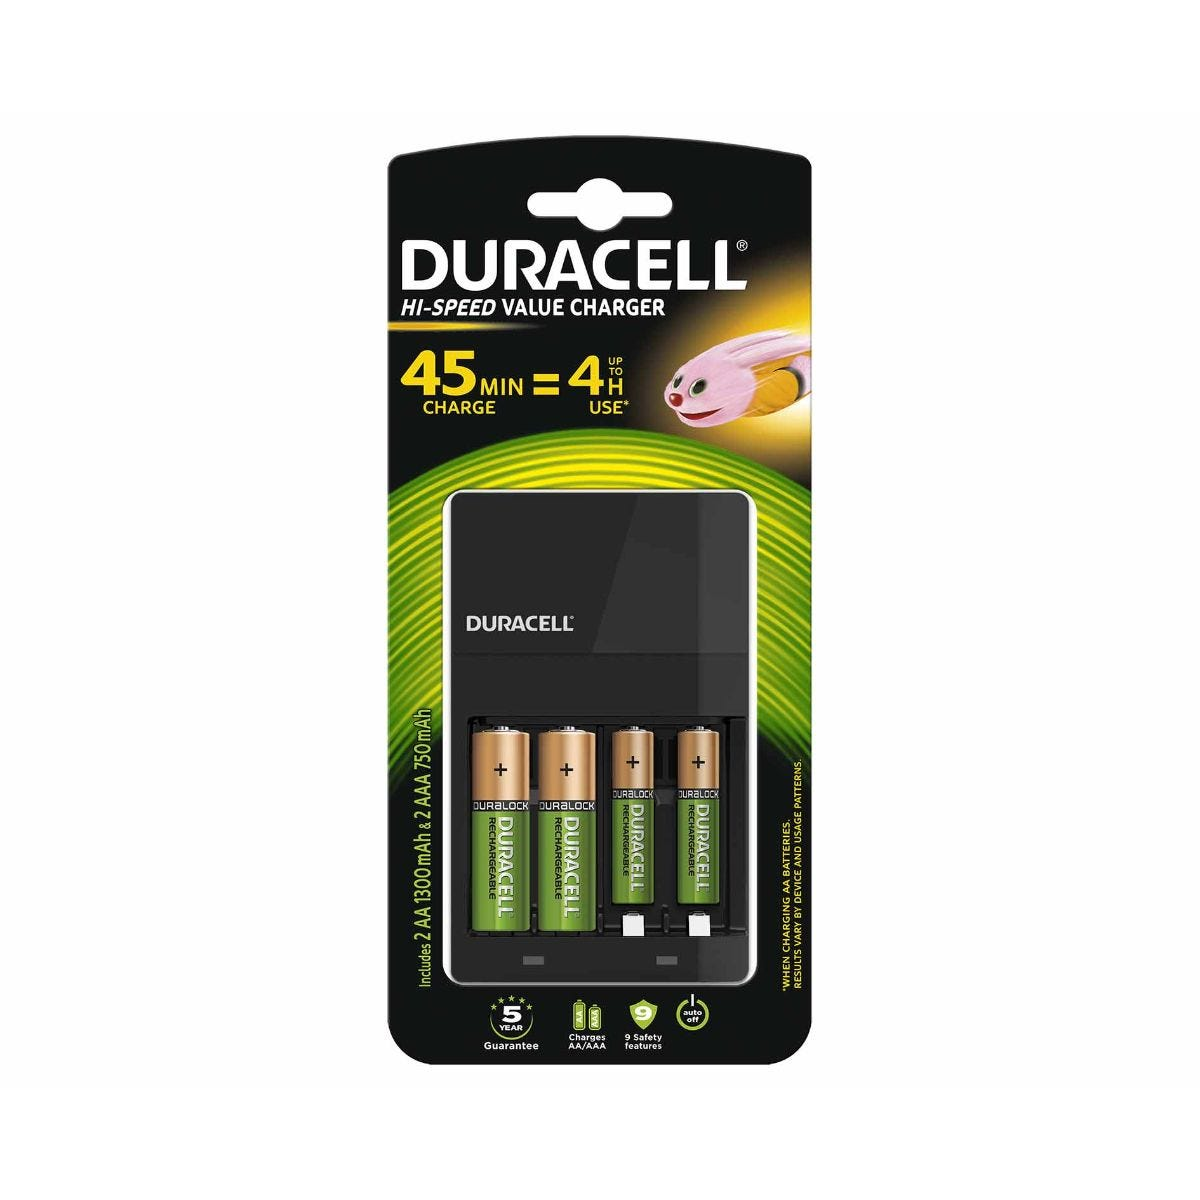 Image of Duracell 4 Hour Battery Charger